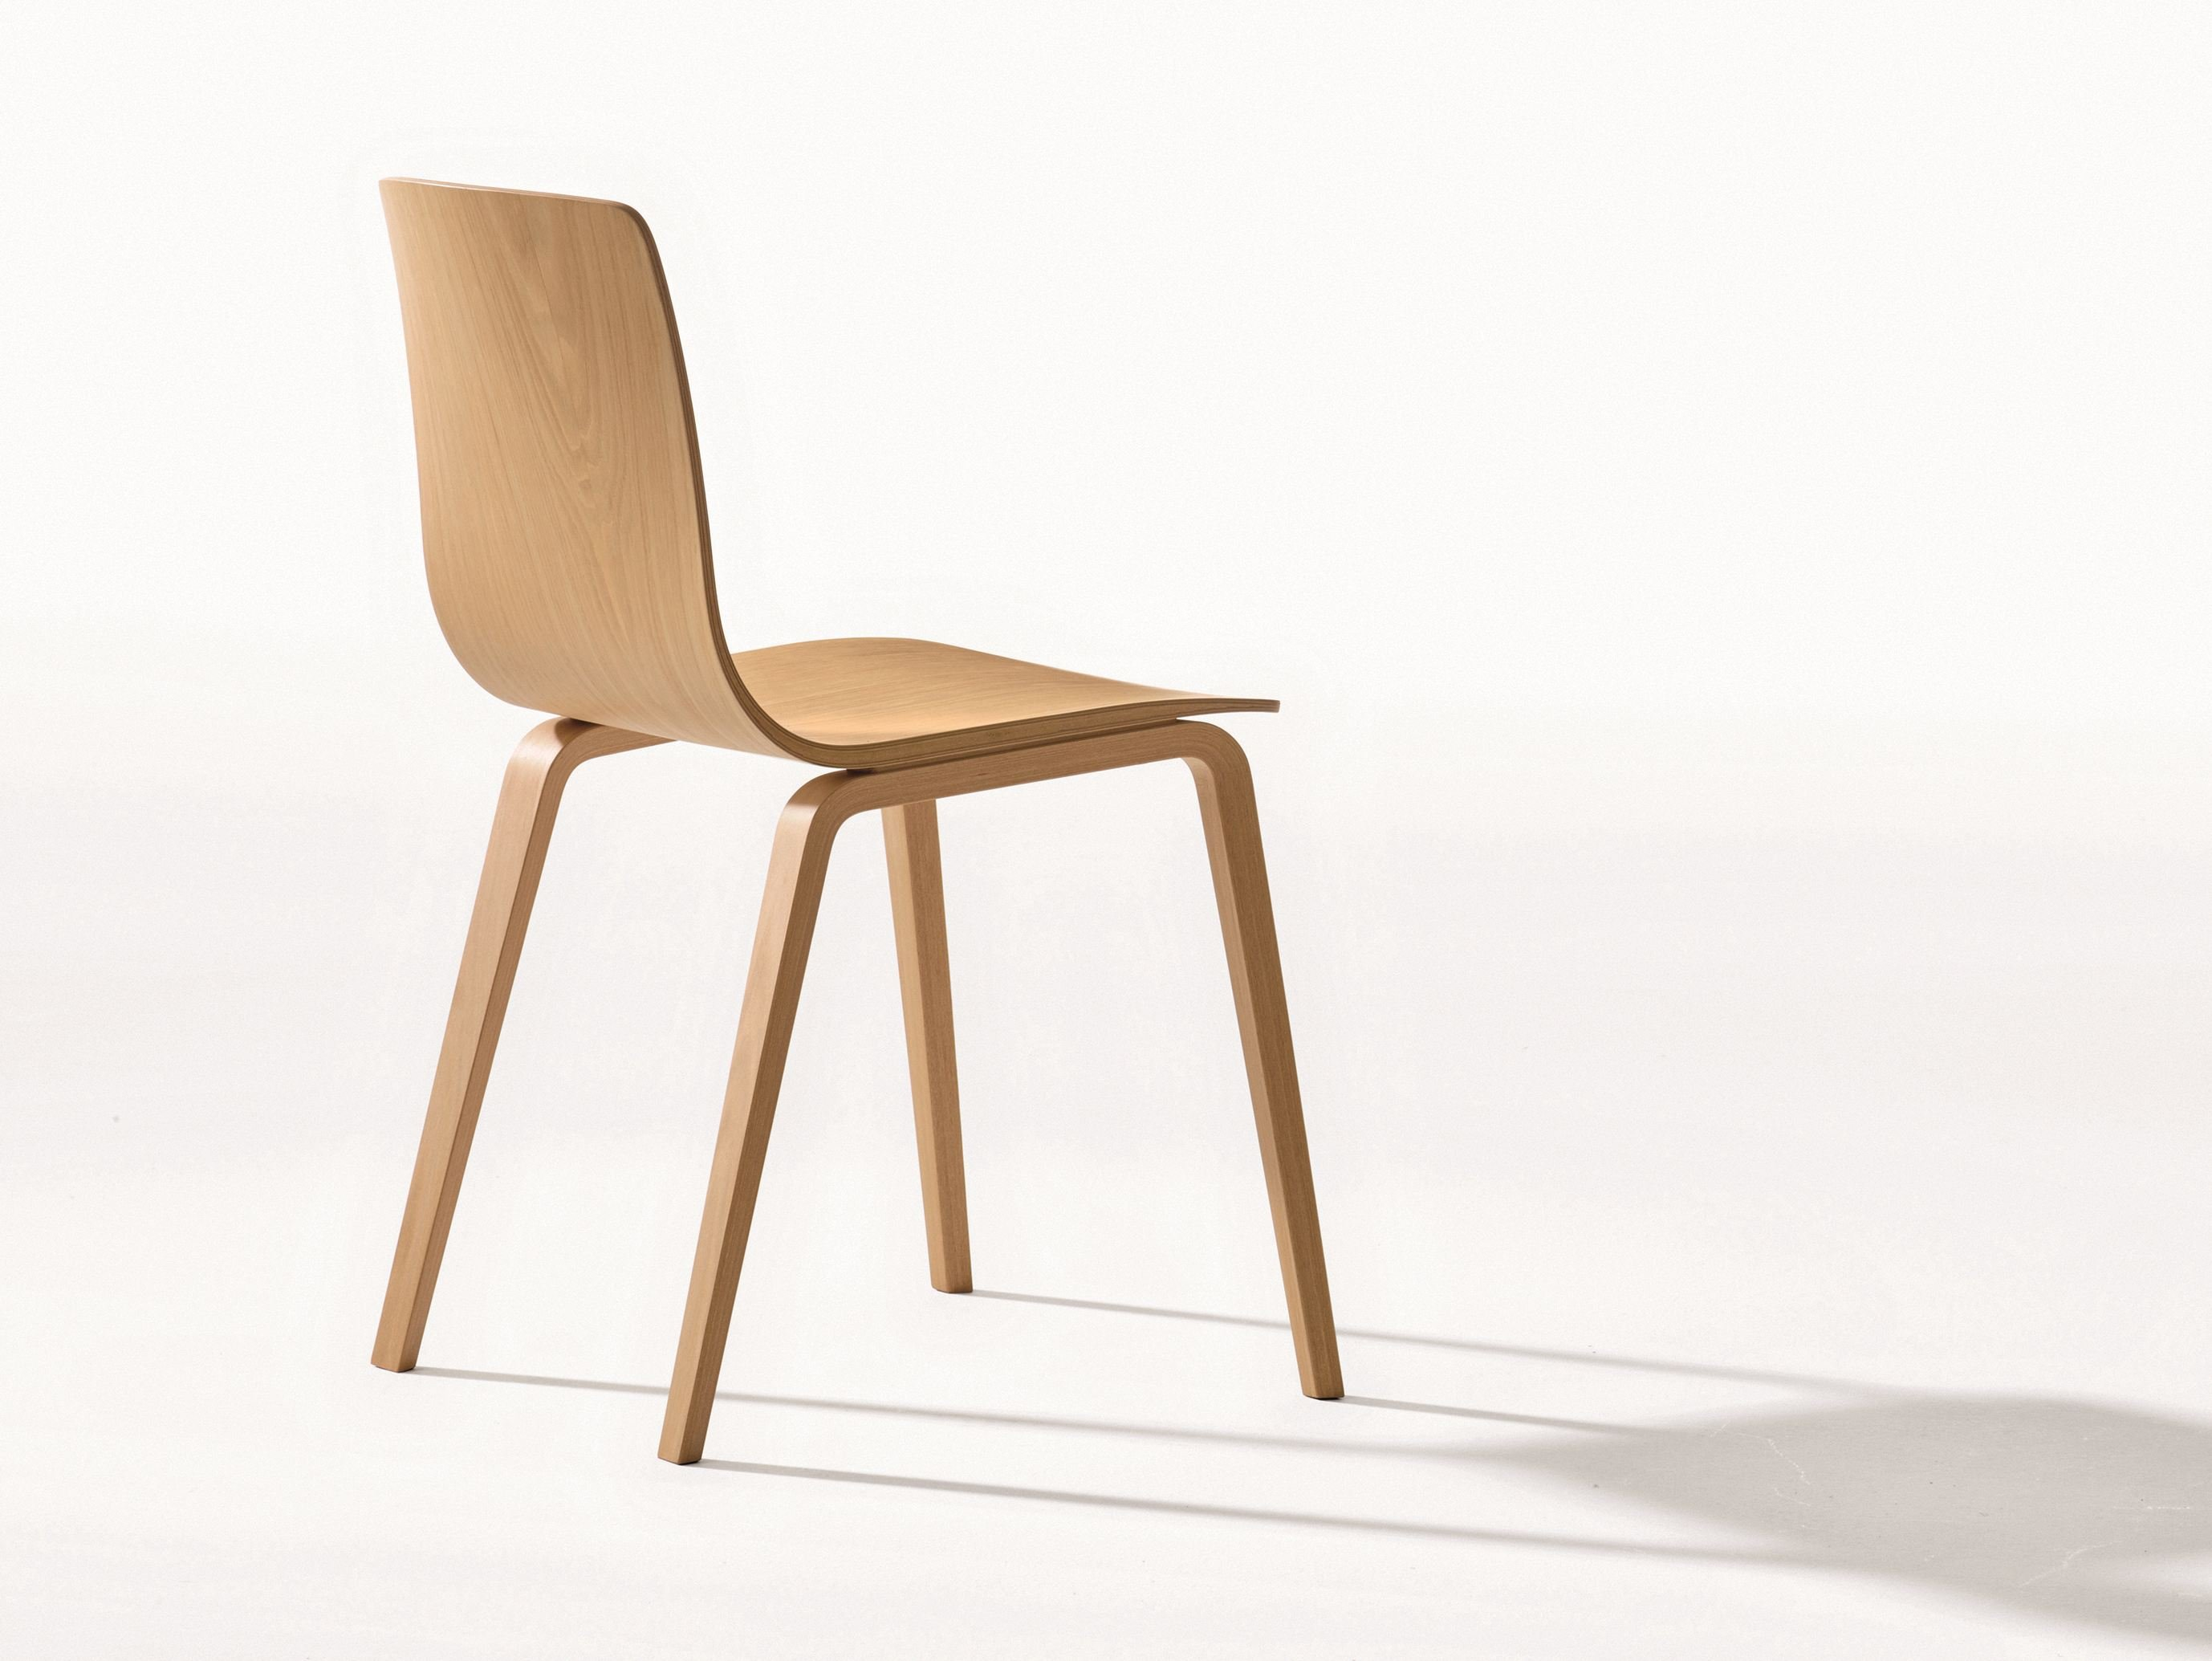 Stackable wooden chair aava collection by arper design - Vieille chaise en bois ...